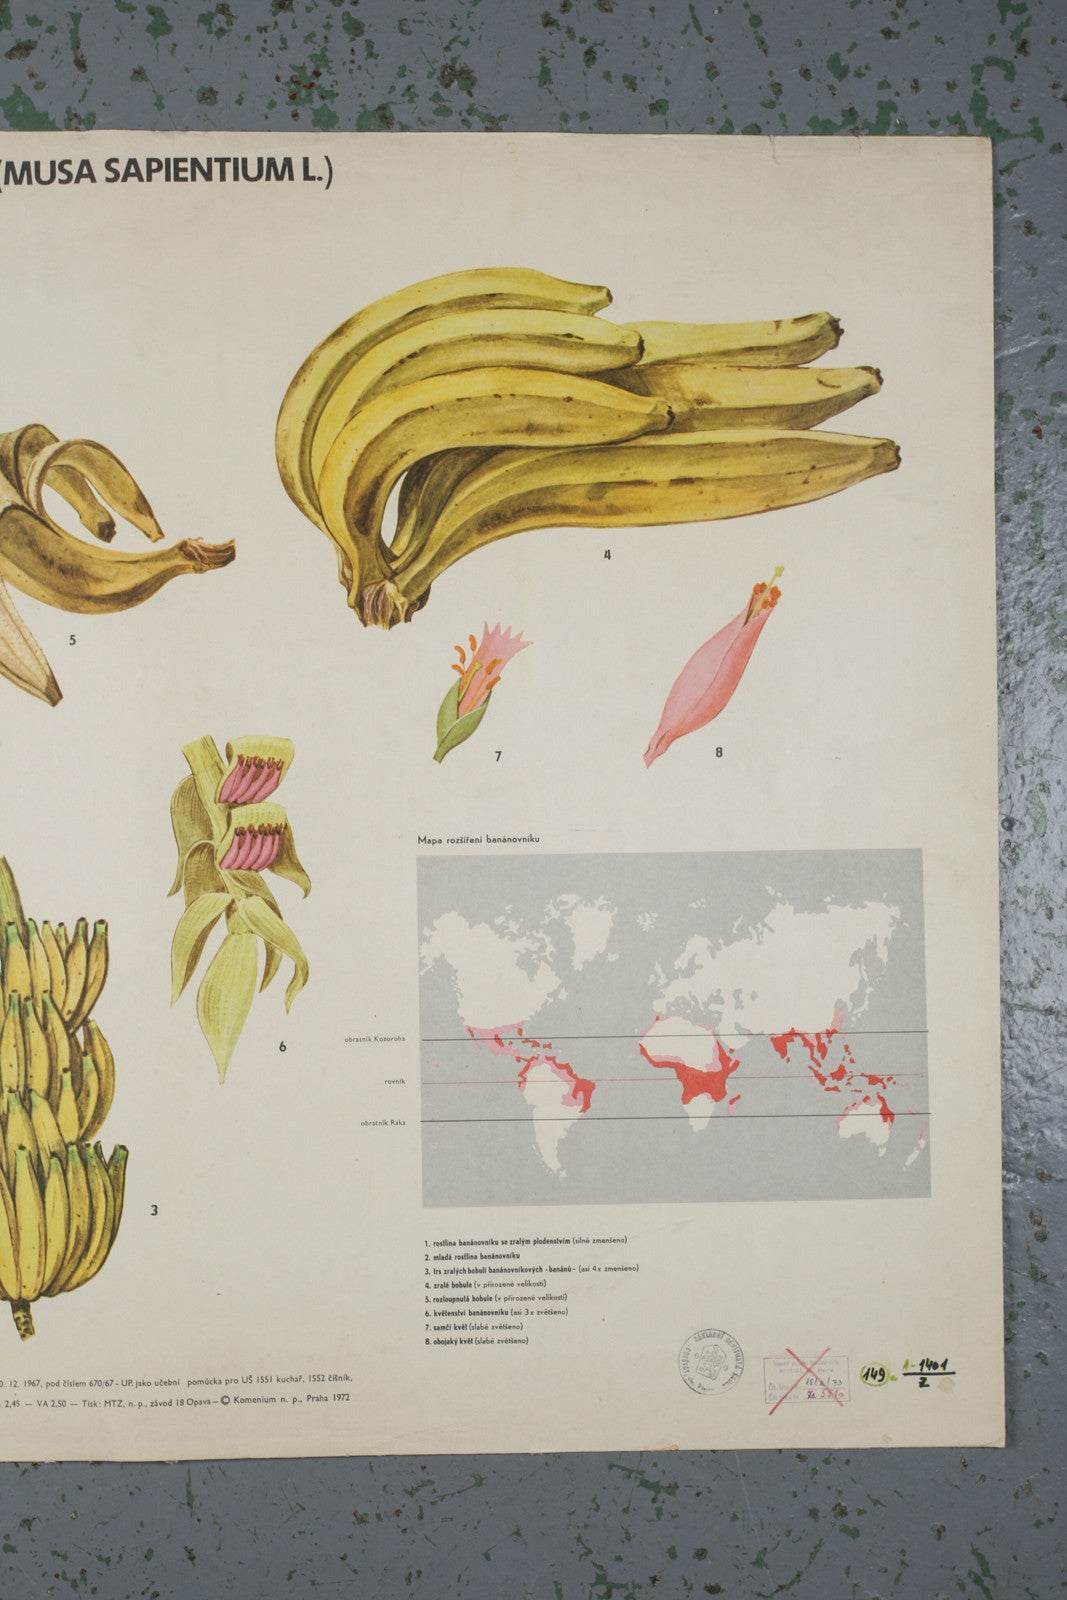 Botanical banana educational poster from 1972